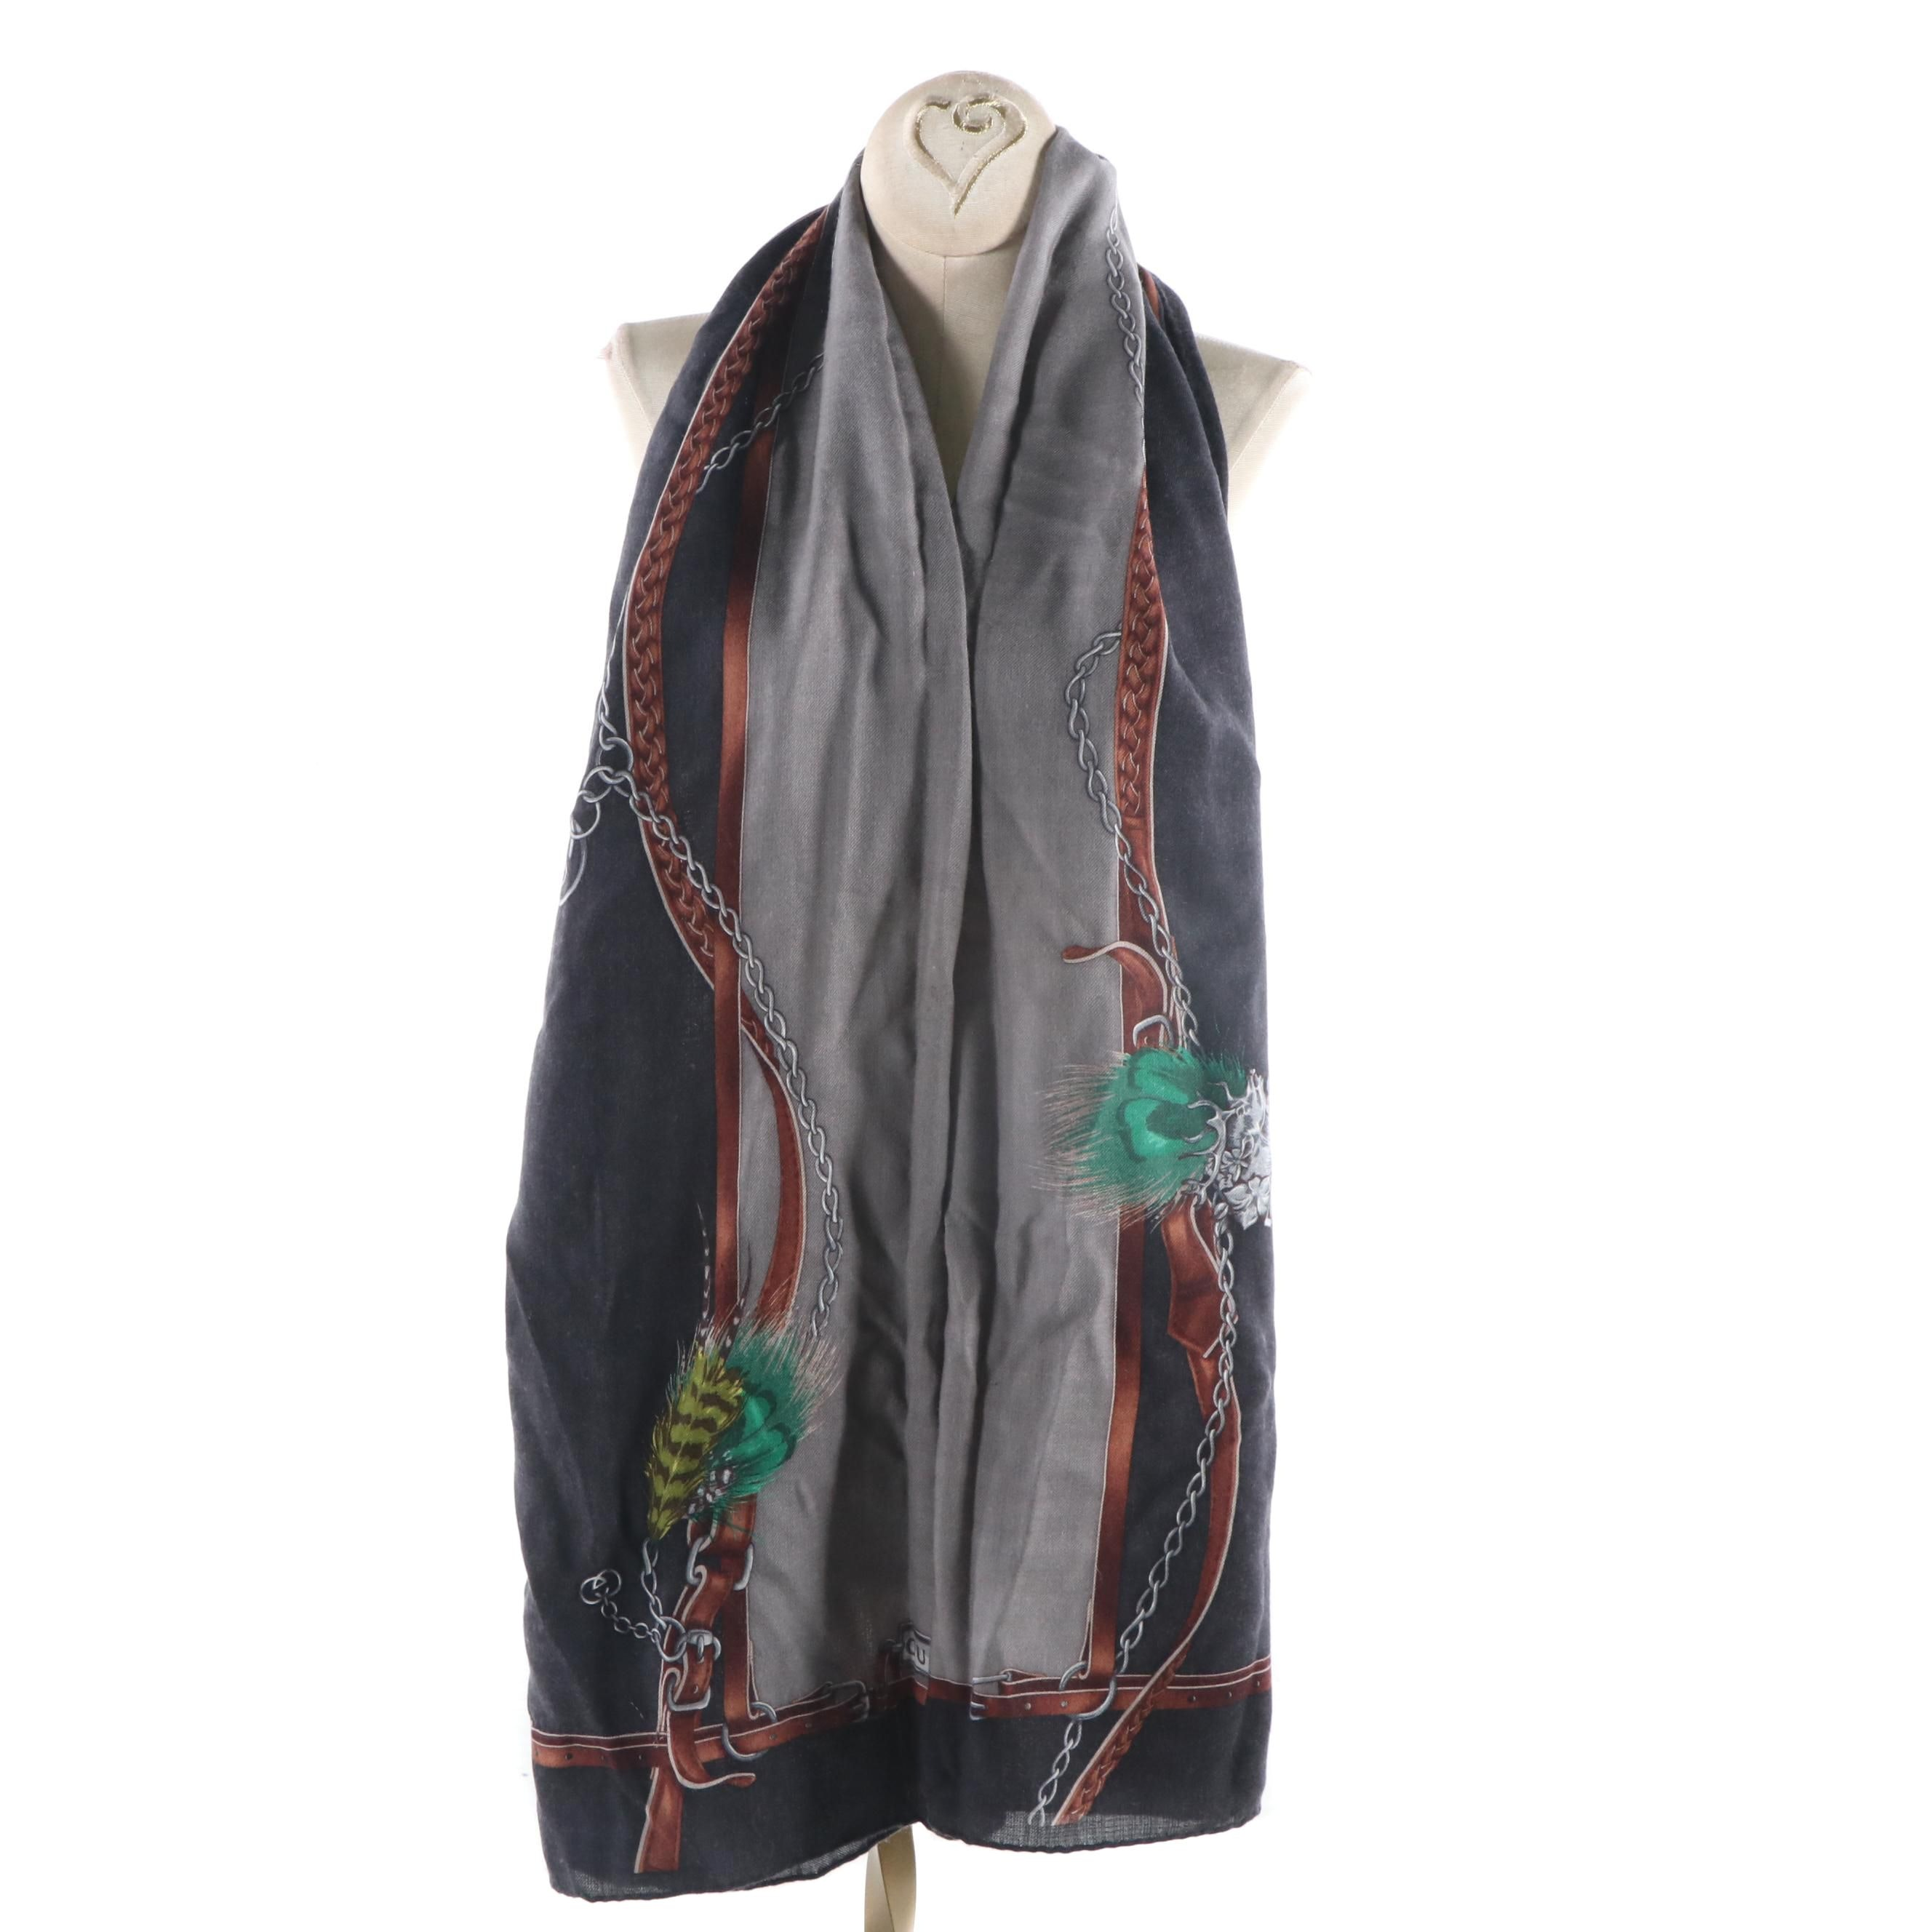 Gucci Cashmere Blend Scarf, Made in Italy